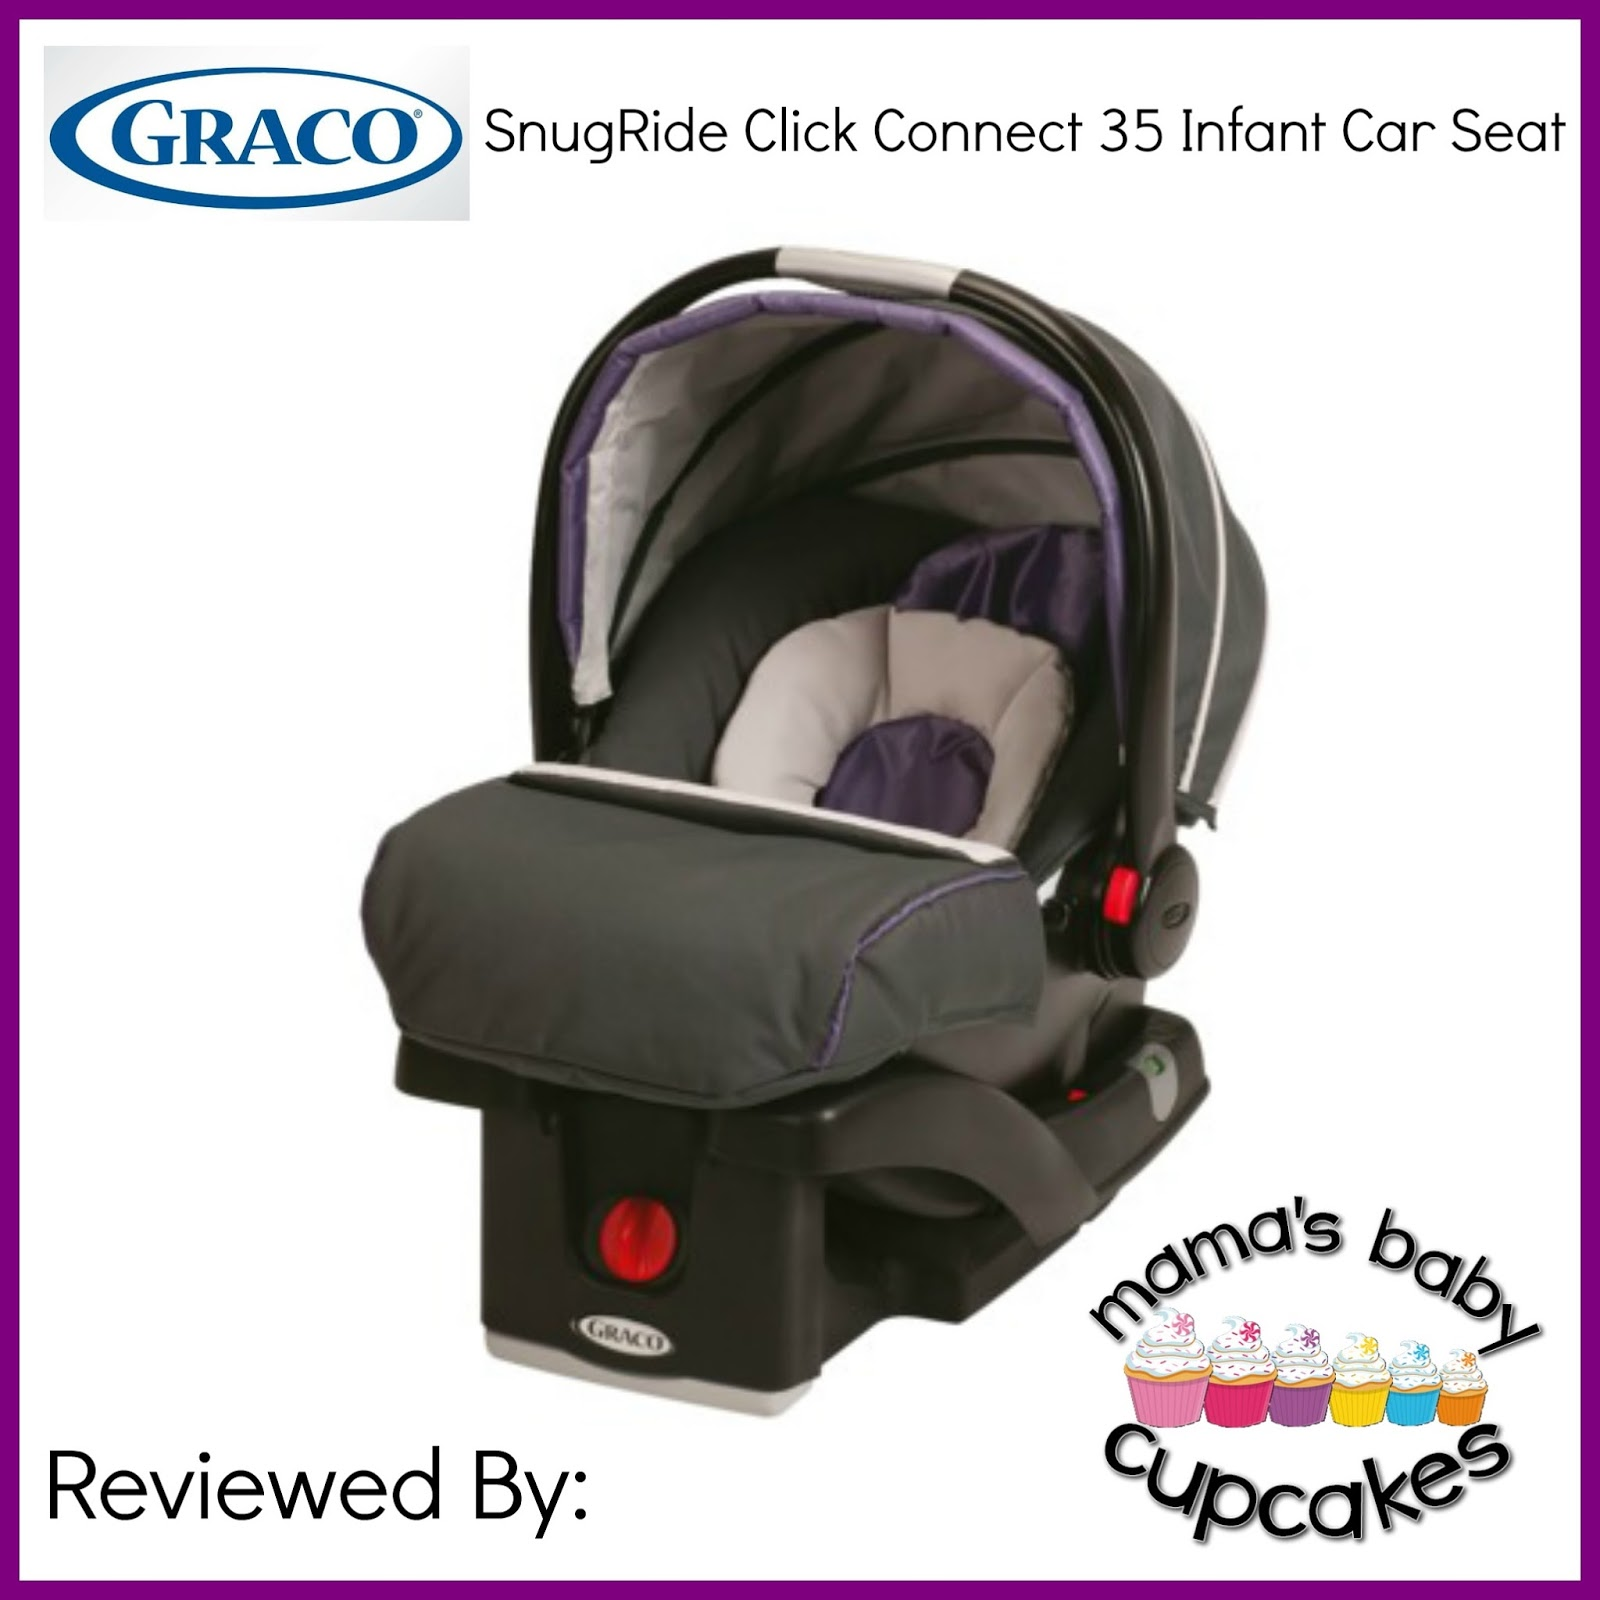 You Can Check Out Michelles Blog Review Of The SnugRideR Click ConnectTM 35 Infant Car Seat In Grapeade Shade And Then Enter Below For Your Chance To